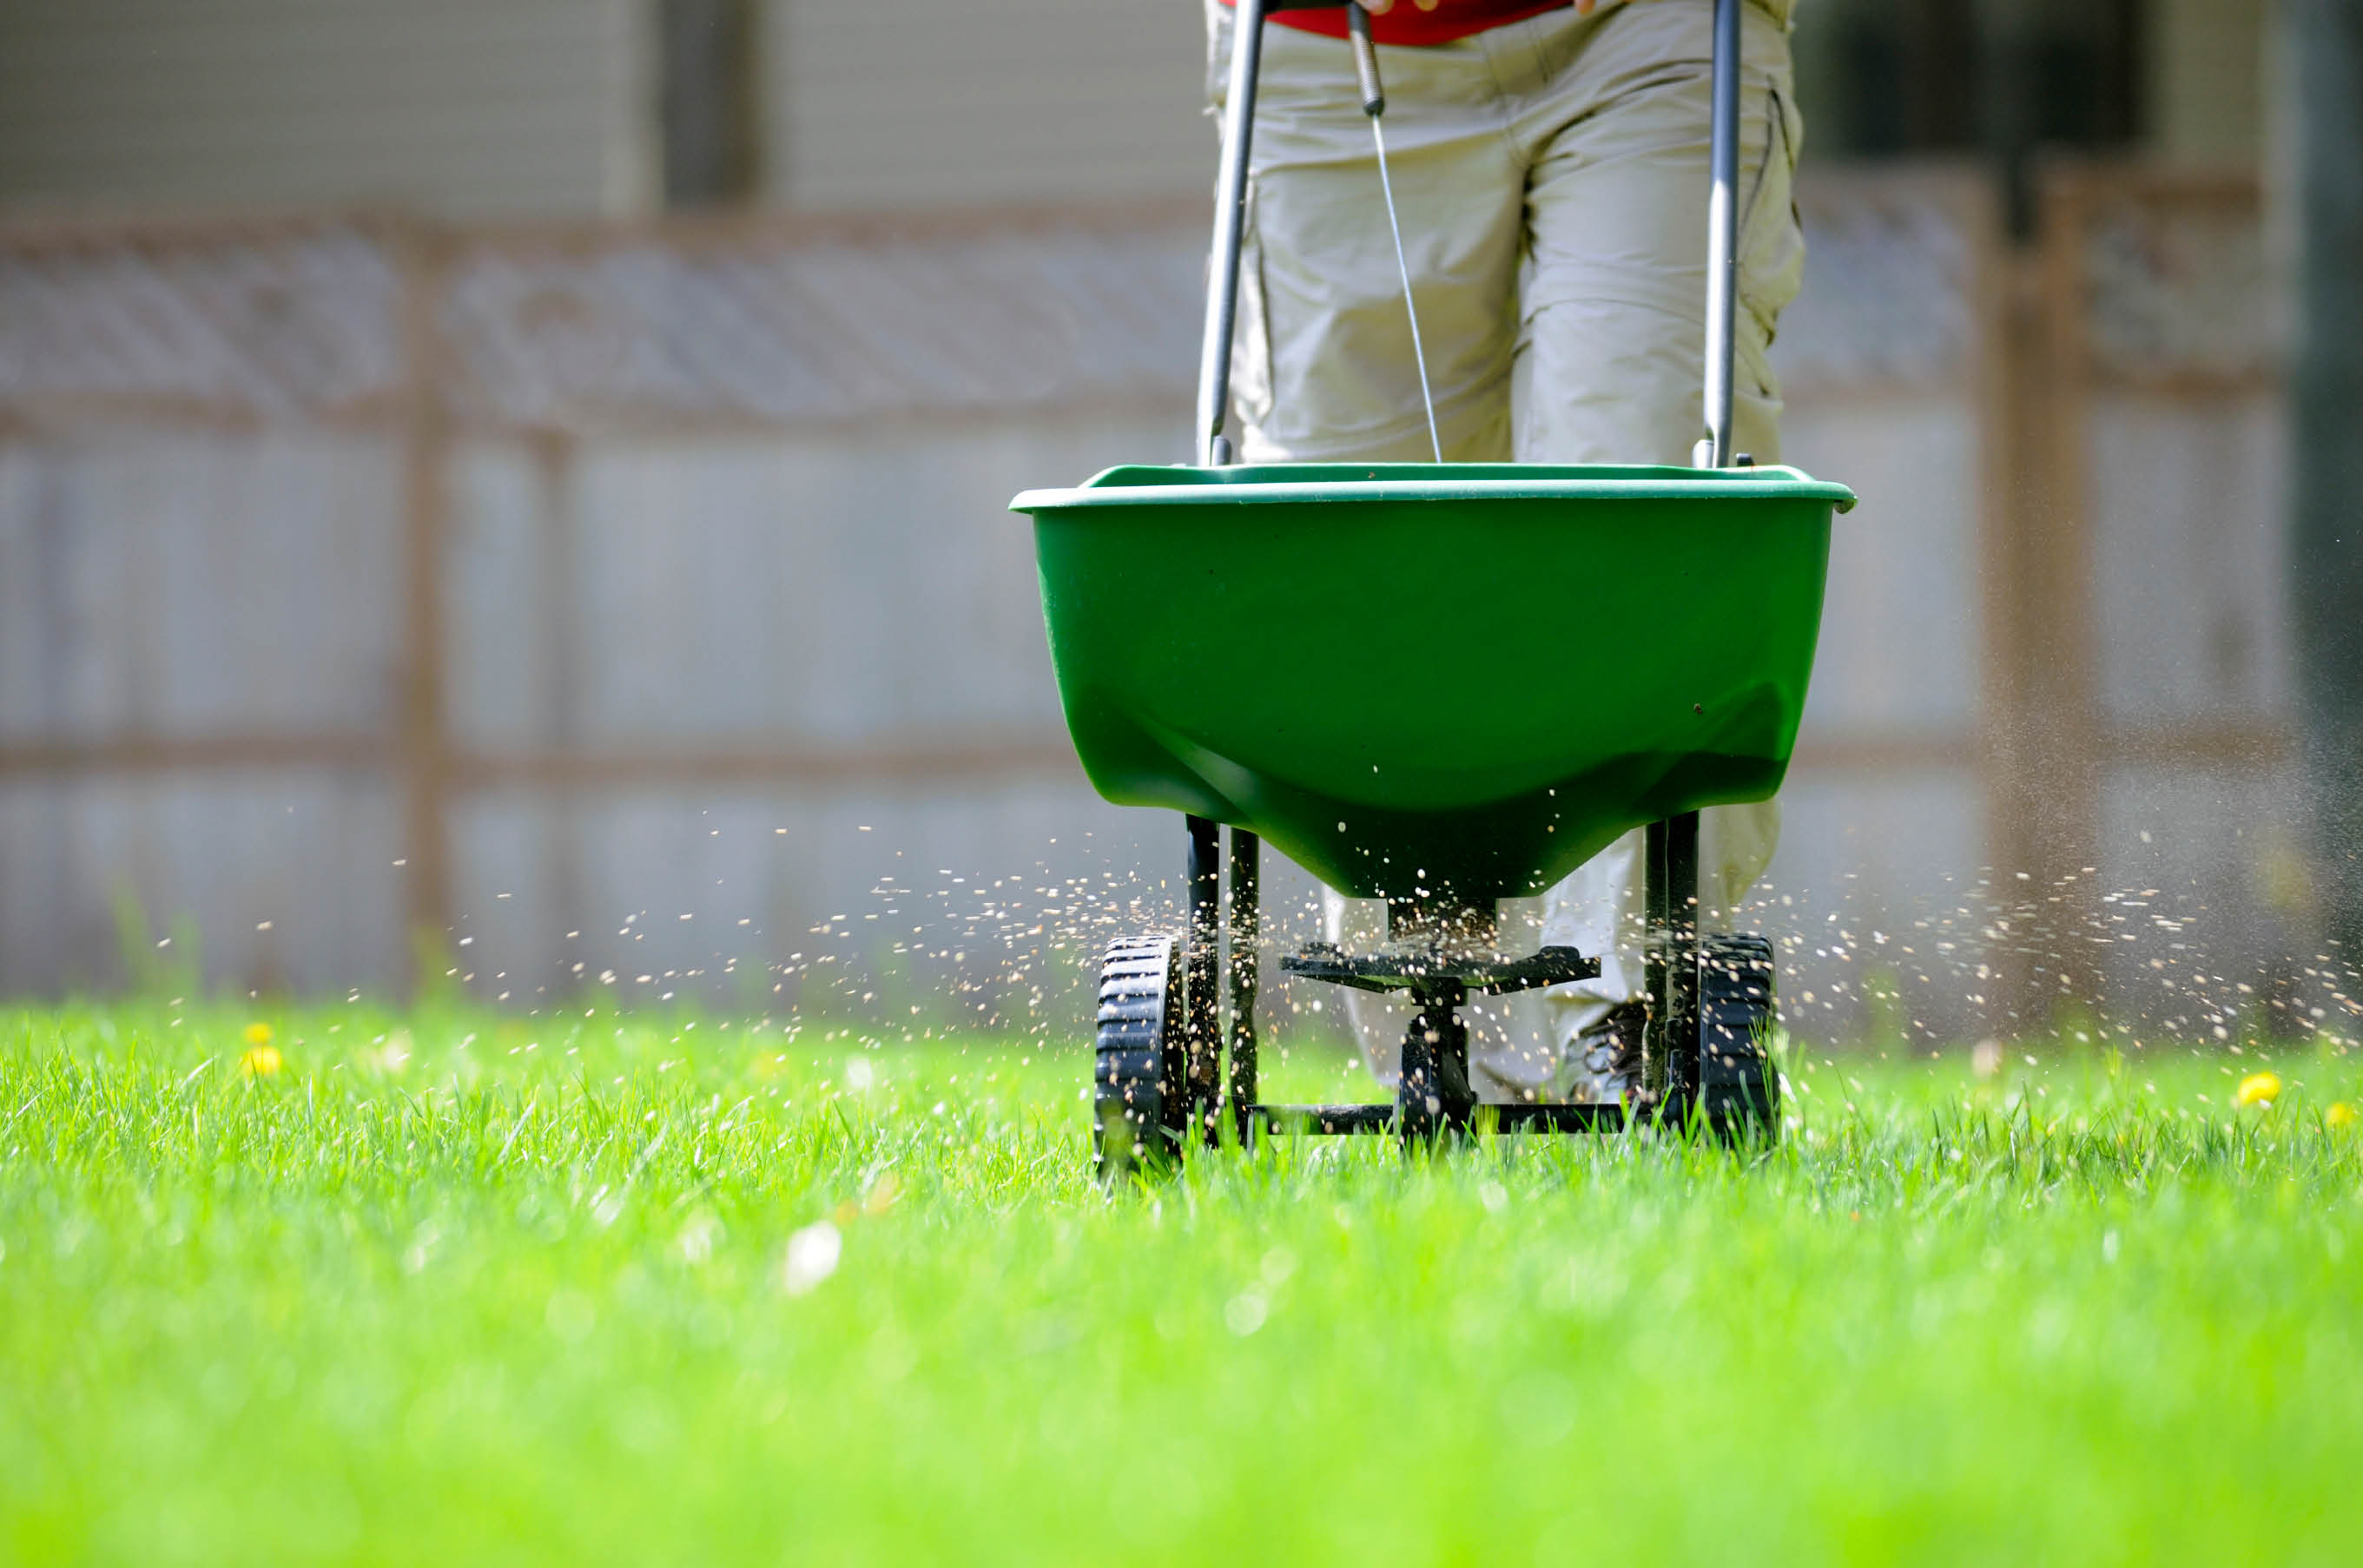 Lawn Fertilzation: One time application or 5-step program in Ogden, Clinton, Layton, Kaysville, Plain City, Roy, Farr West, North Salt Lake, Clearfield, Utah and many more cities in the Weber/Davis area.